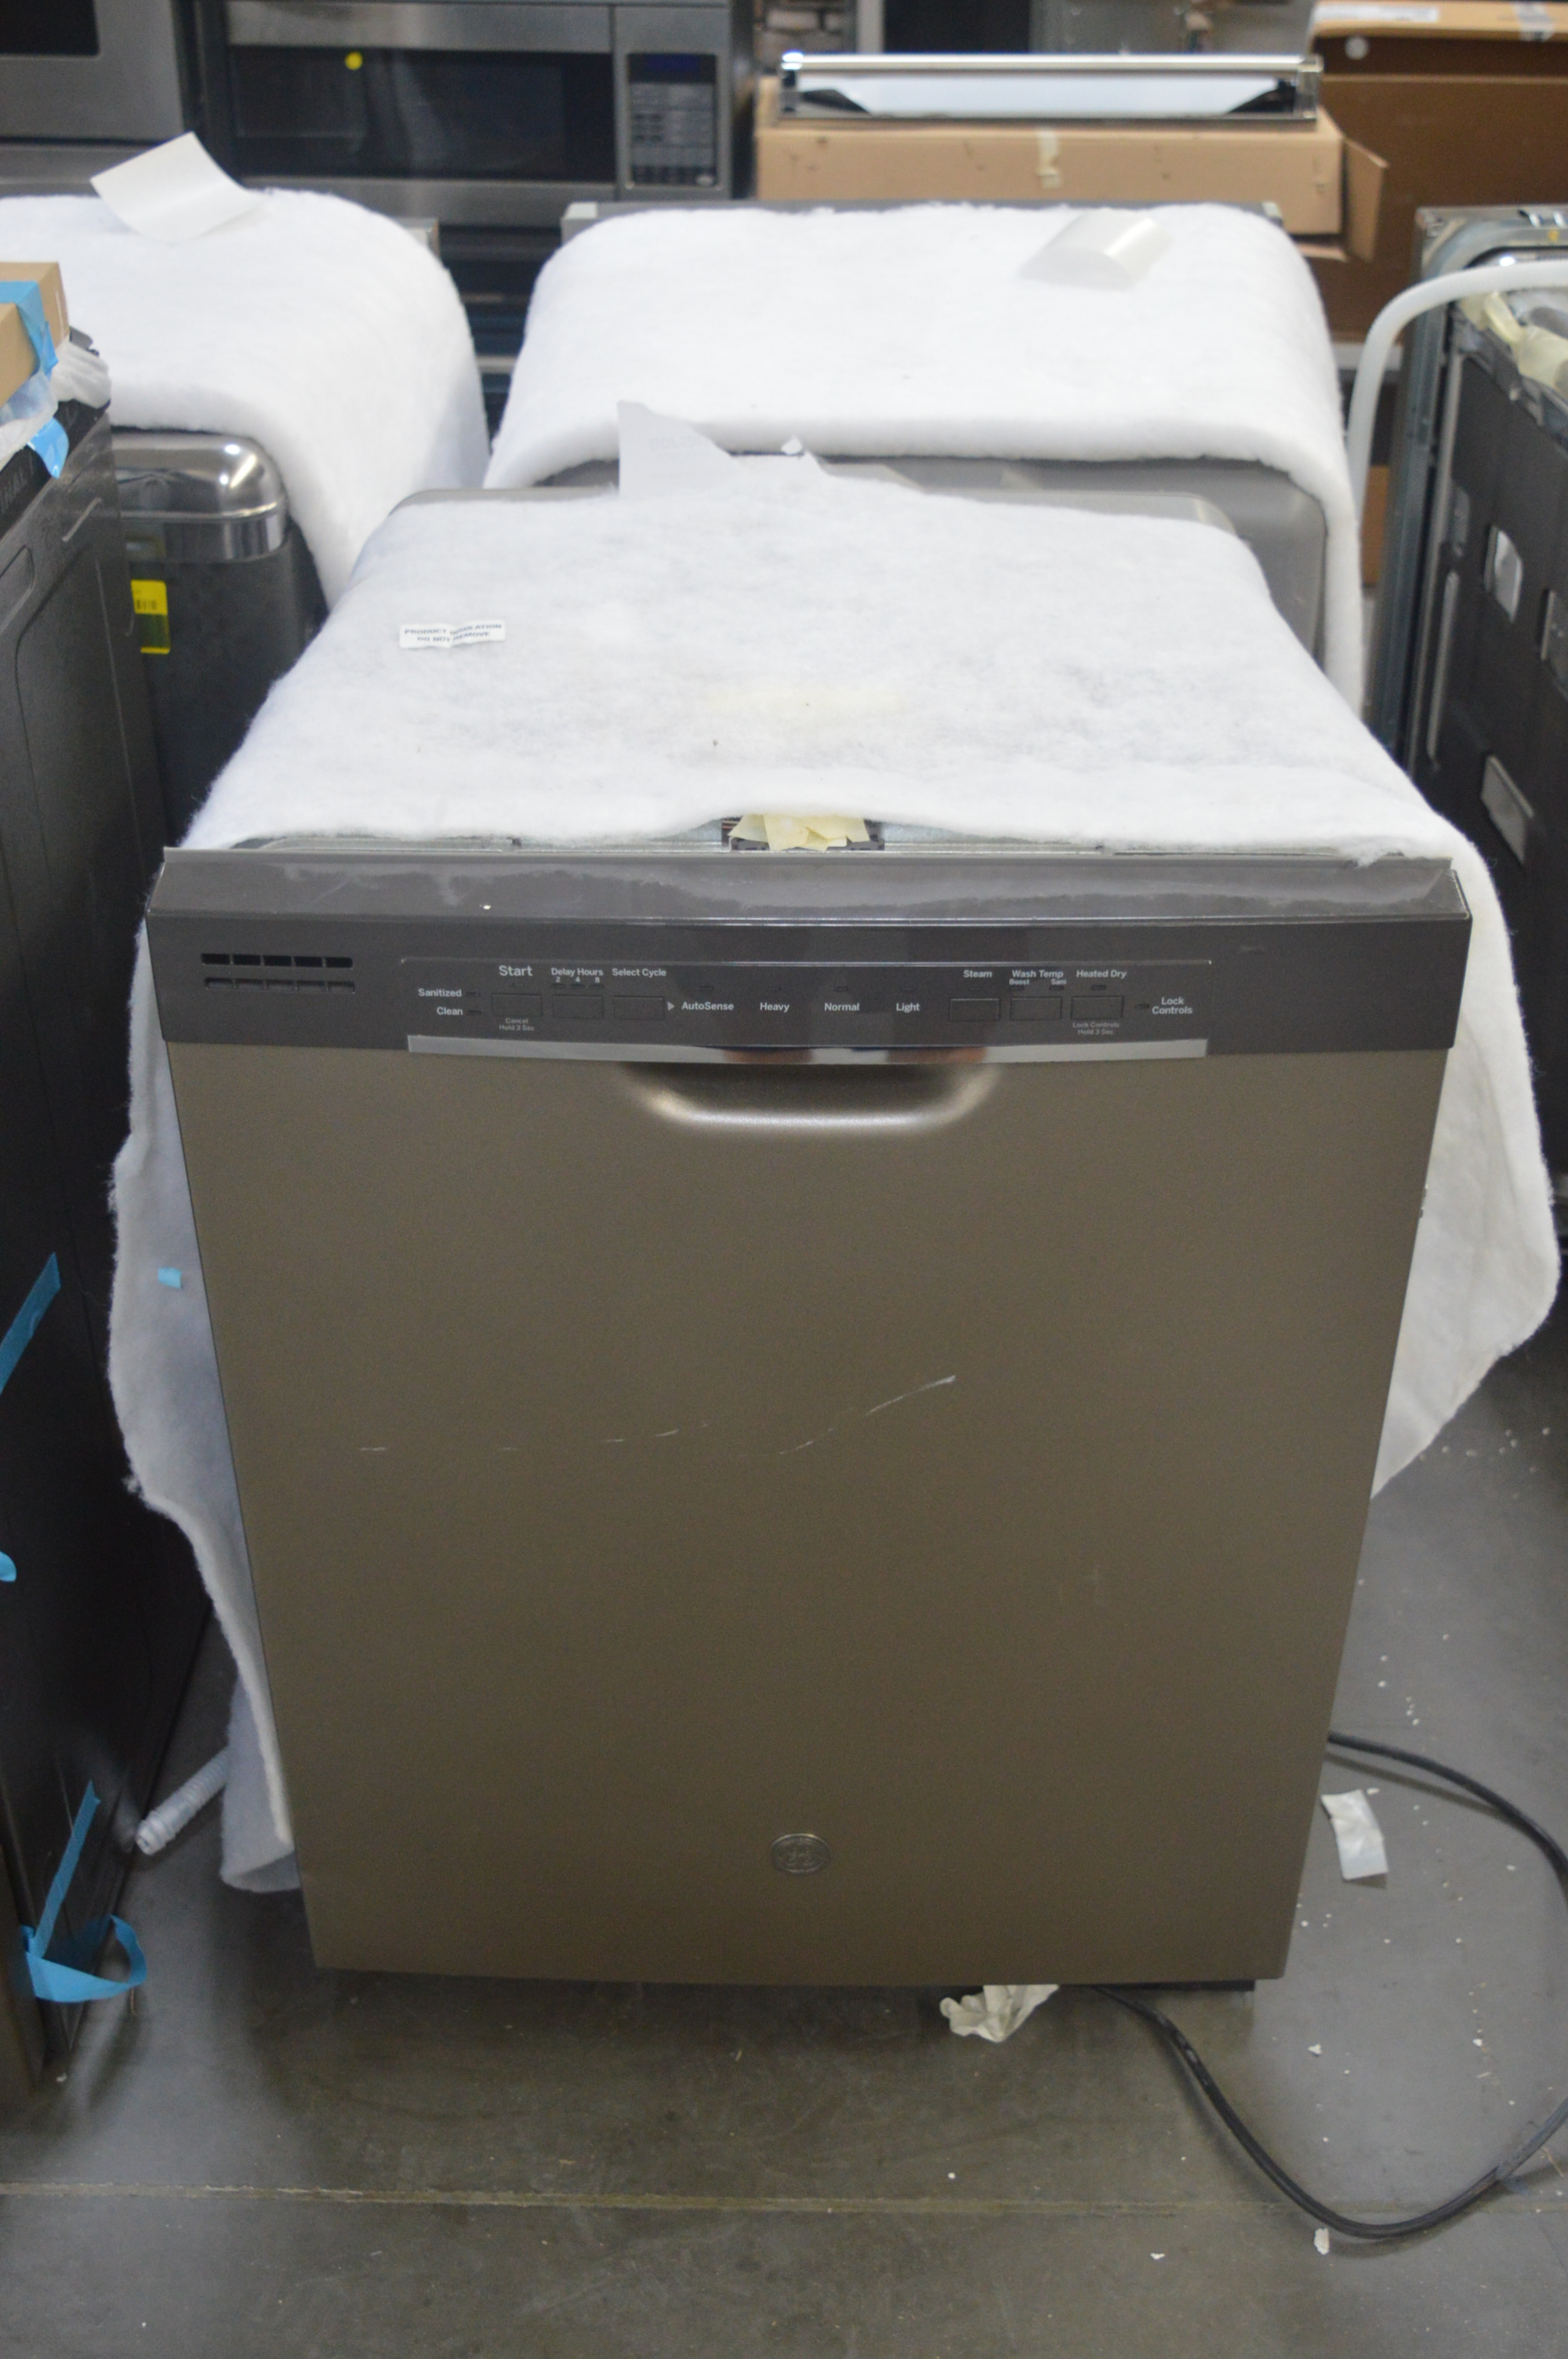 GE GDF520PMJES Full Console Dishwasher